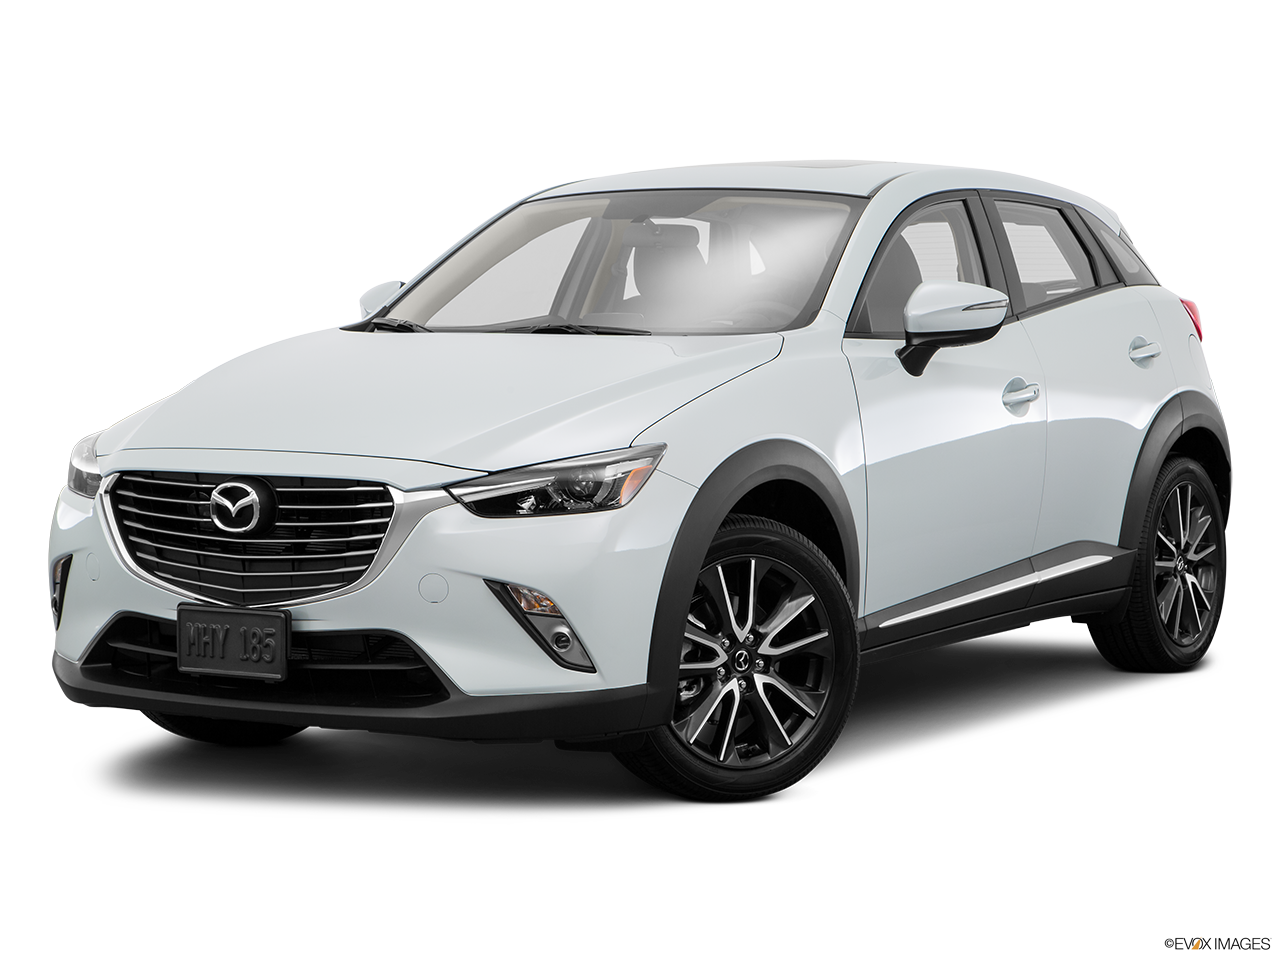 Test Drive A 2016 Mazda CX-3 at Galpin Mazda in Los Angeles